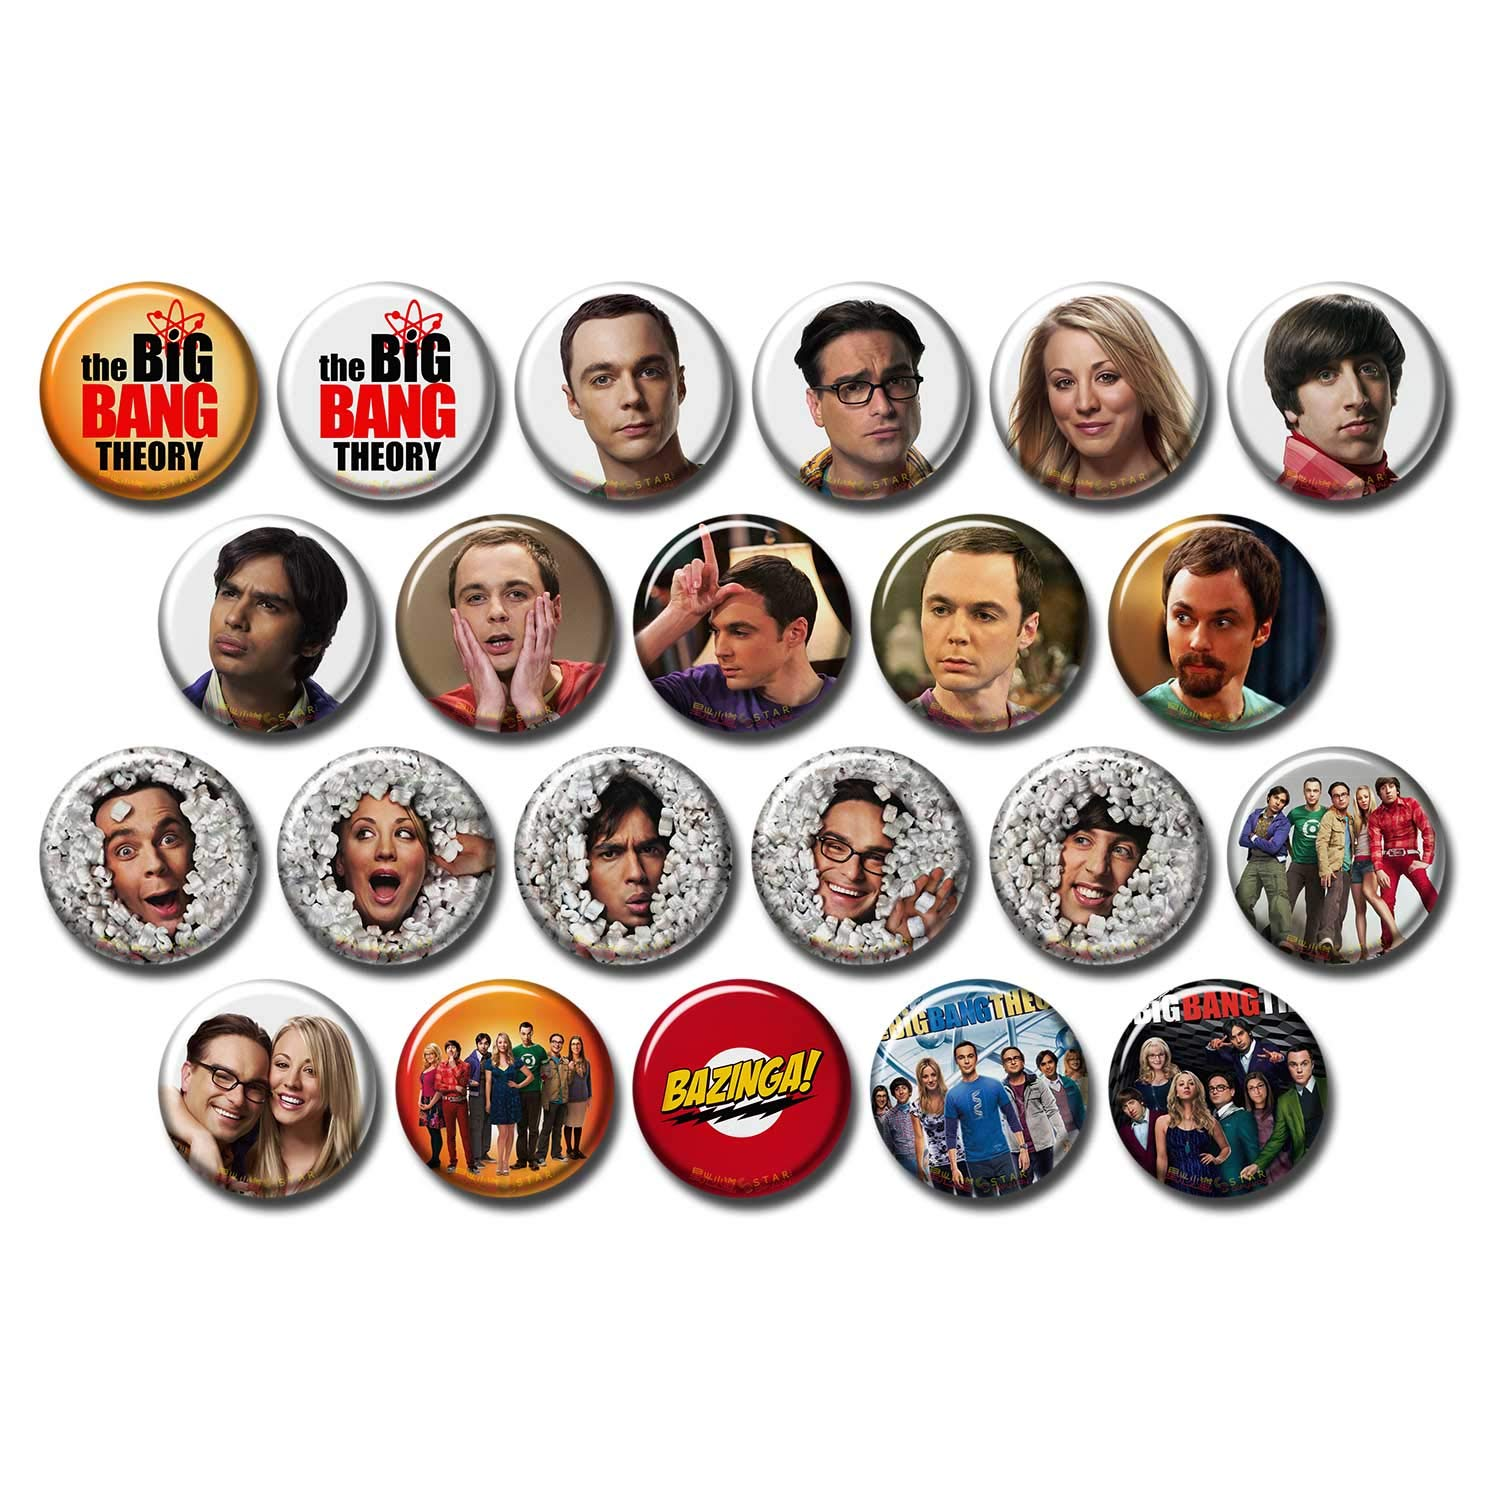 The Big Bang Theory 22 pcs Button Fridge Magnets Set Pack TV Series 045-P001 tbbt Sheldon Cooper Jim Parsons,Party Favors Supplies Gifts Home Decor (Round 1.5 inch|3.7cm)